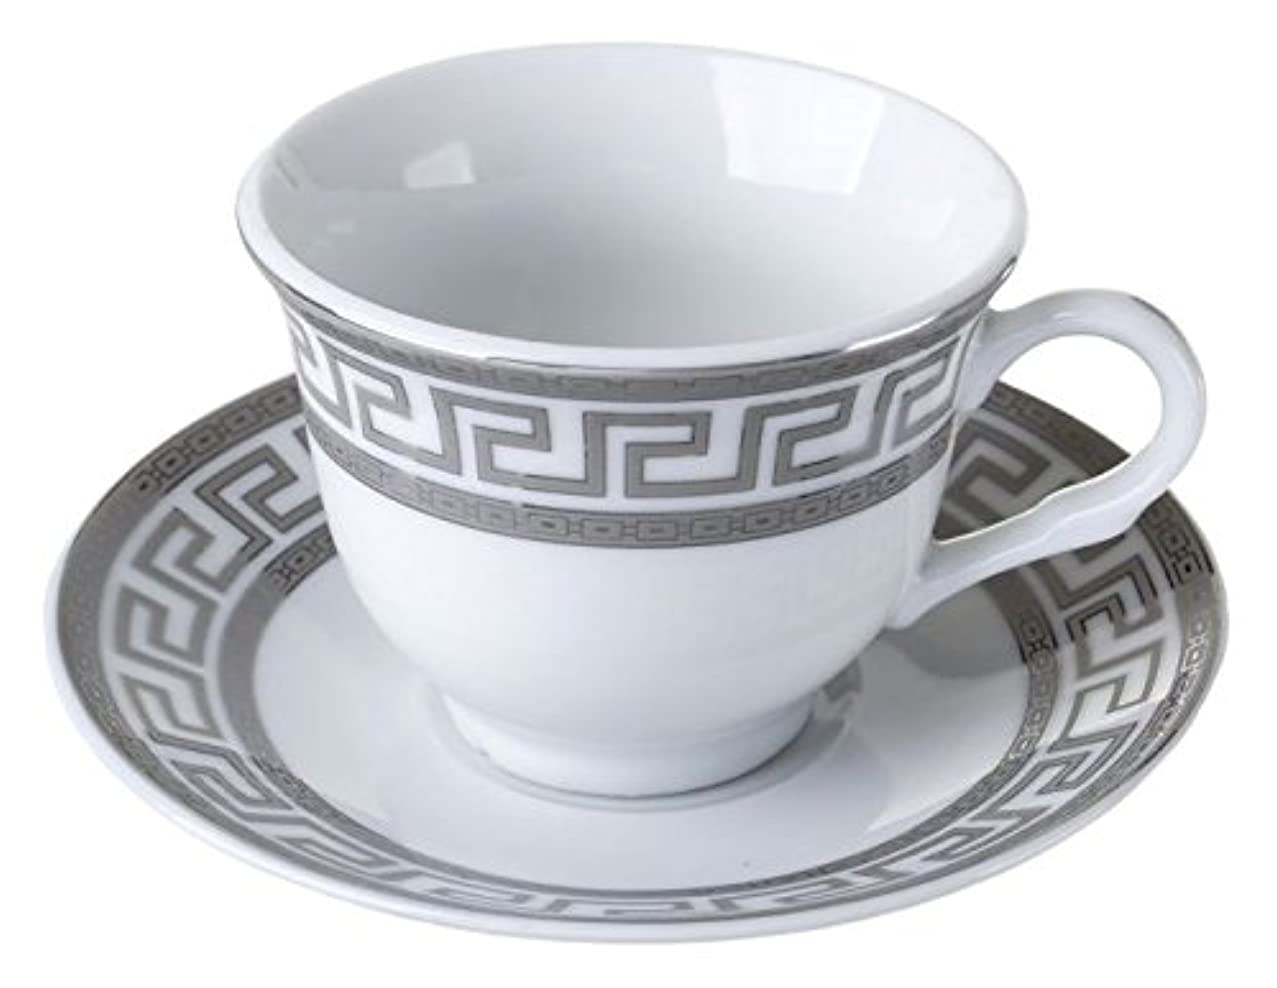 Imperial Gift D1347A-12 12 Piece Greek Key Espresso Cup & Saucer Set Gift Boxed Silver